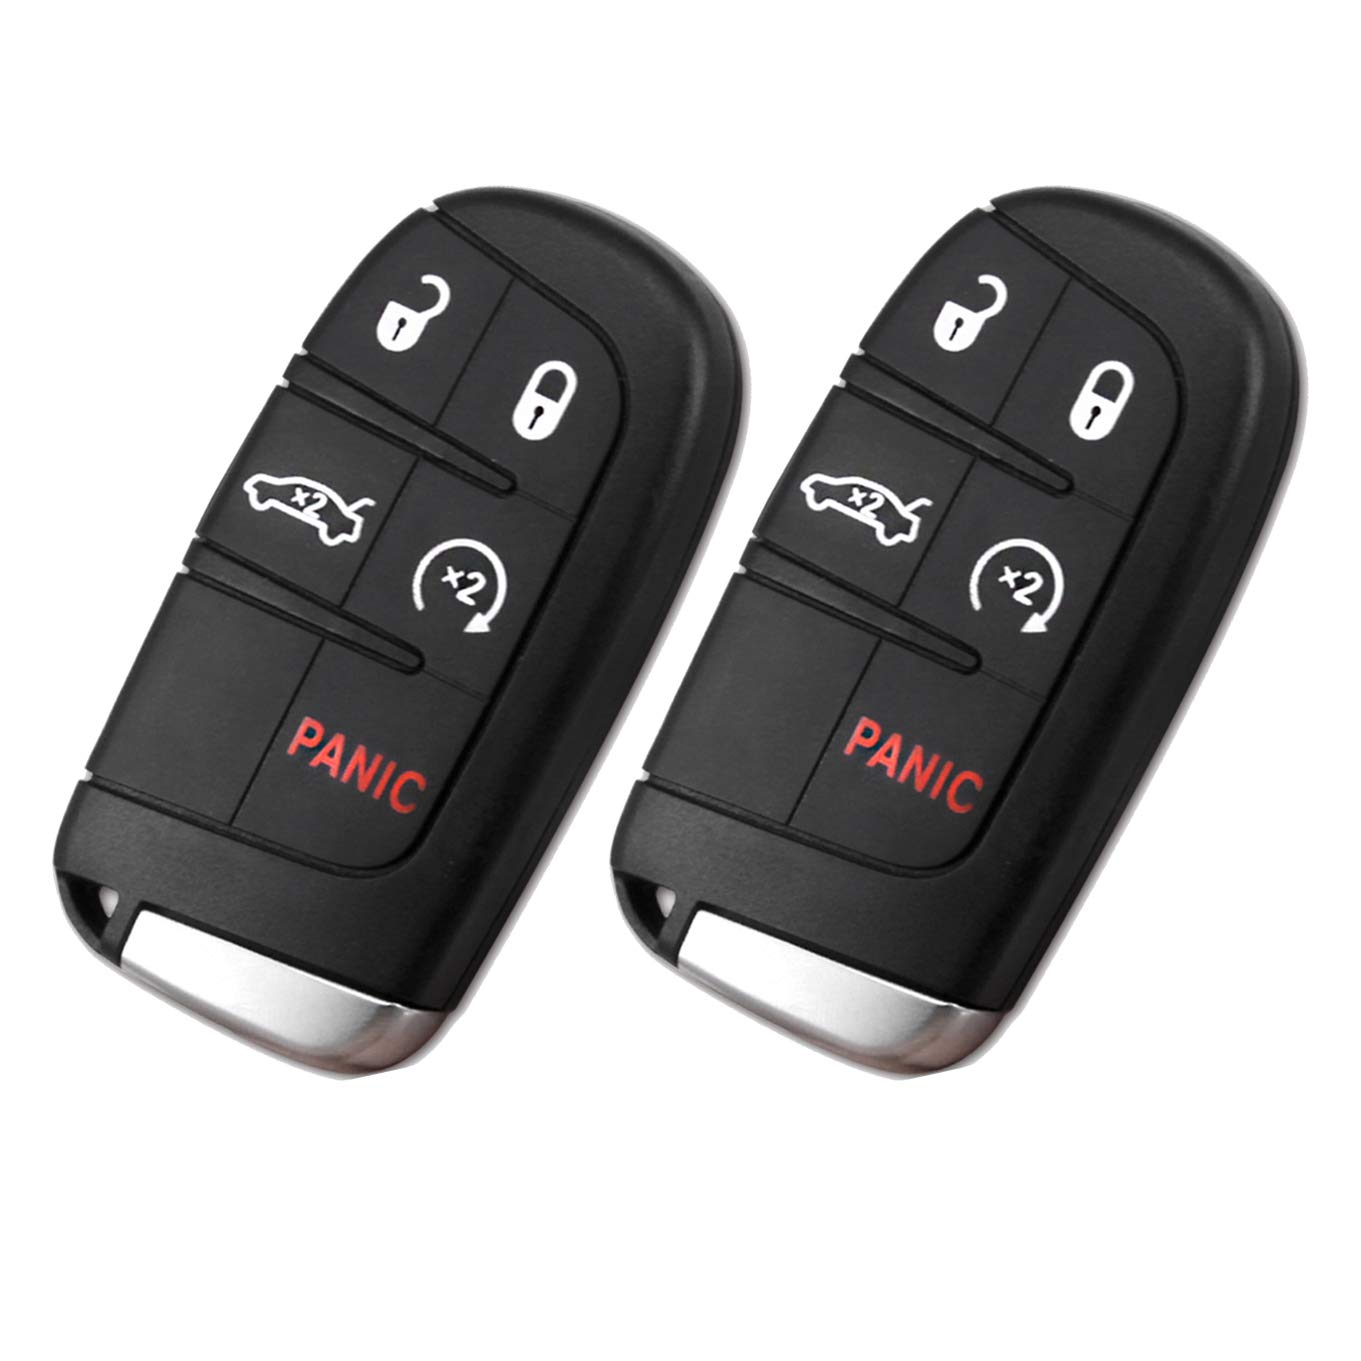 Car Remote Entry System Kits for Chrysler 300 Dodge Journey Replacement 433MHz Remote Key Fob M3N-40821302